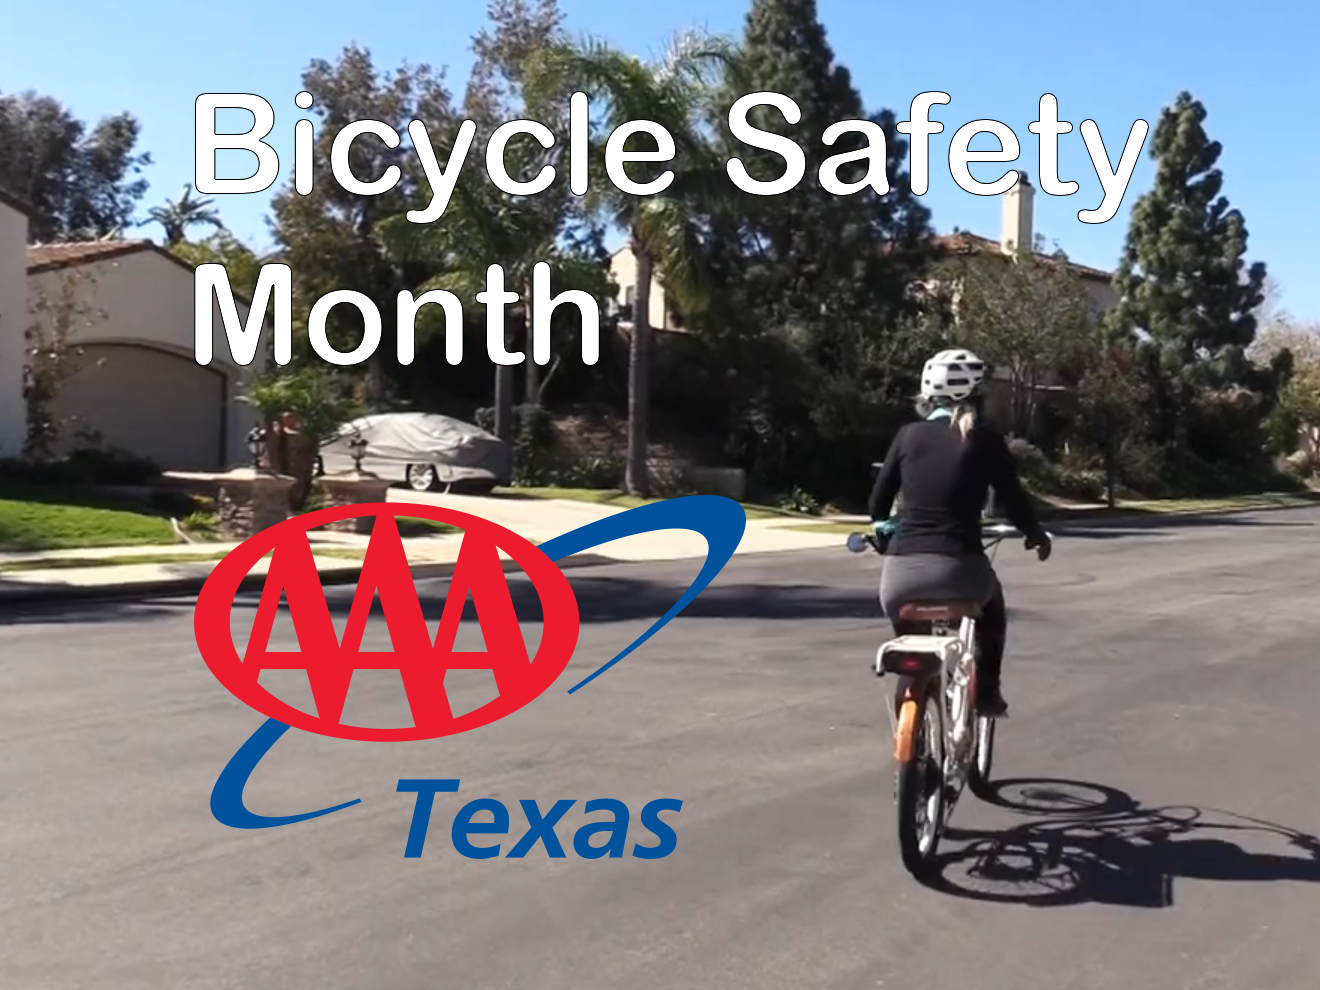 Bicycle Safety Month 2021